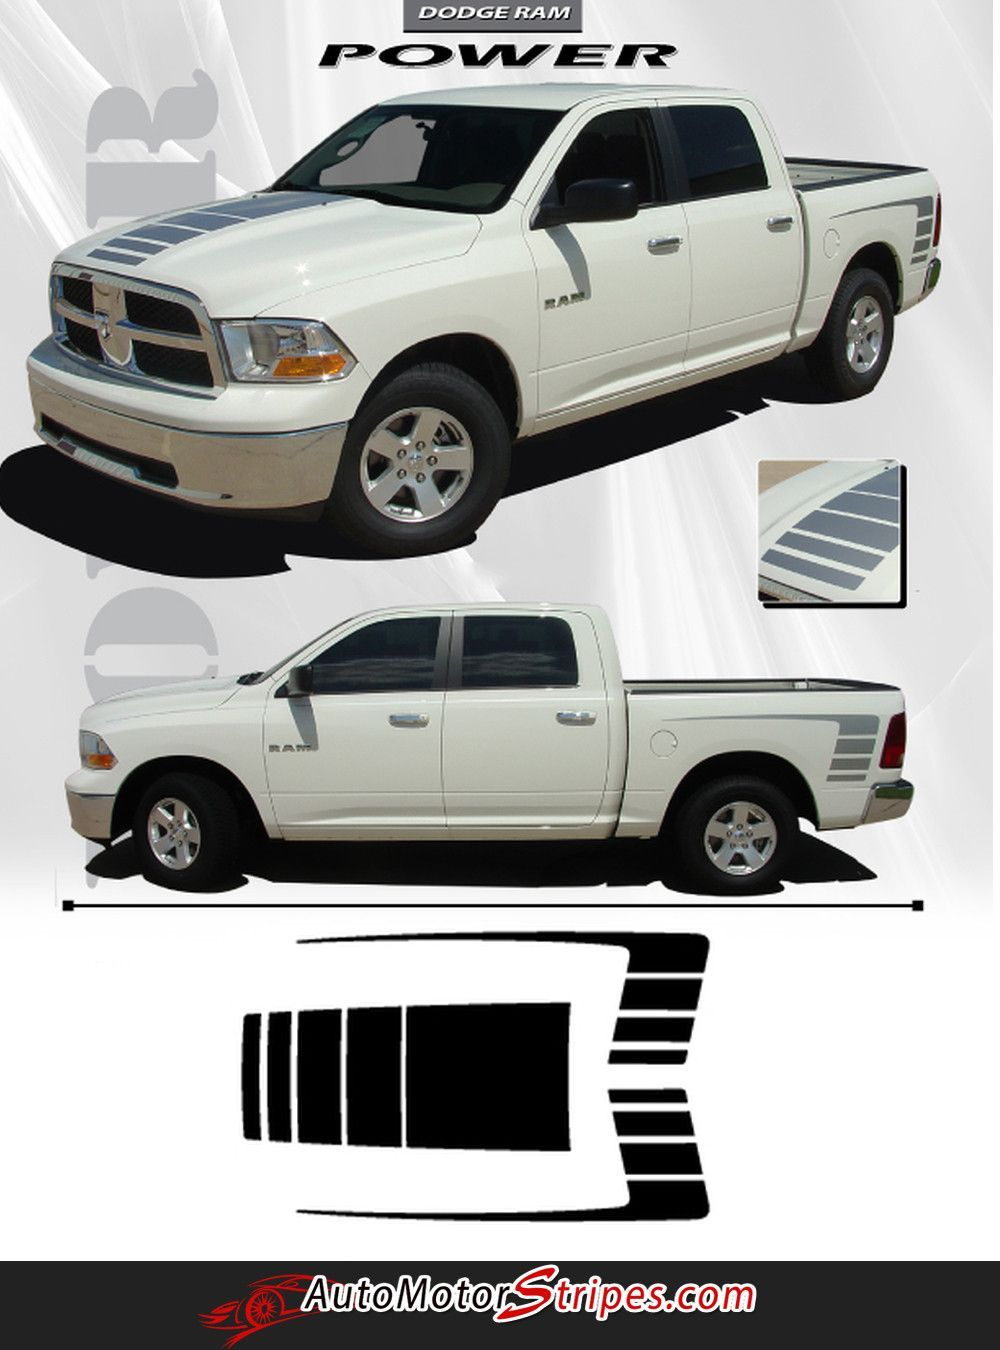 Dodge Ram Power Truck Hood And Rear Side Strobes Truck - Truck bed decals customford fvinyl graphics for bed fender